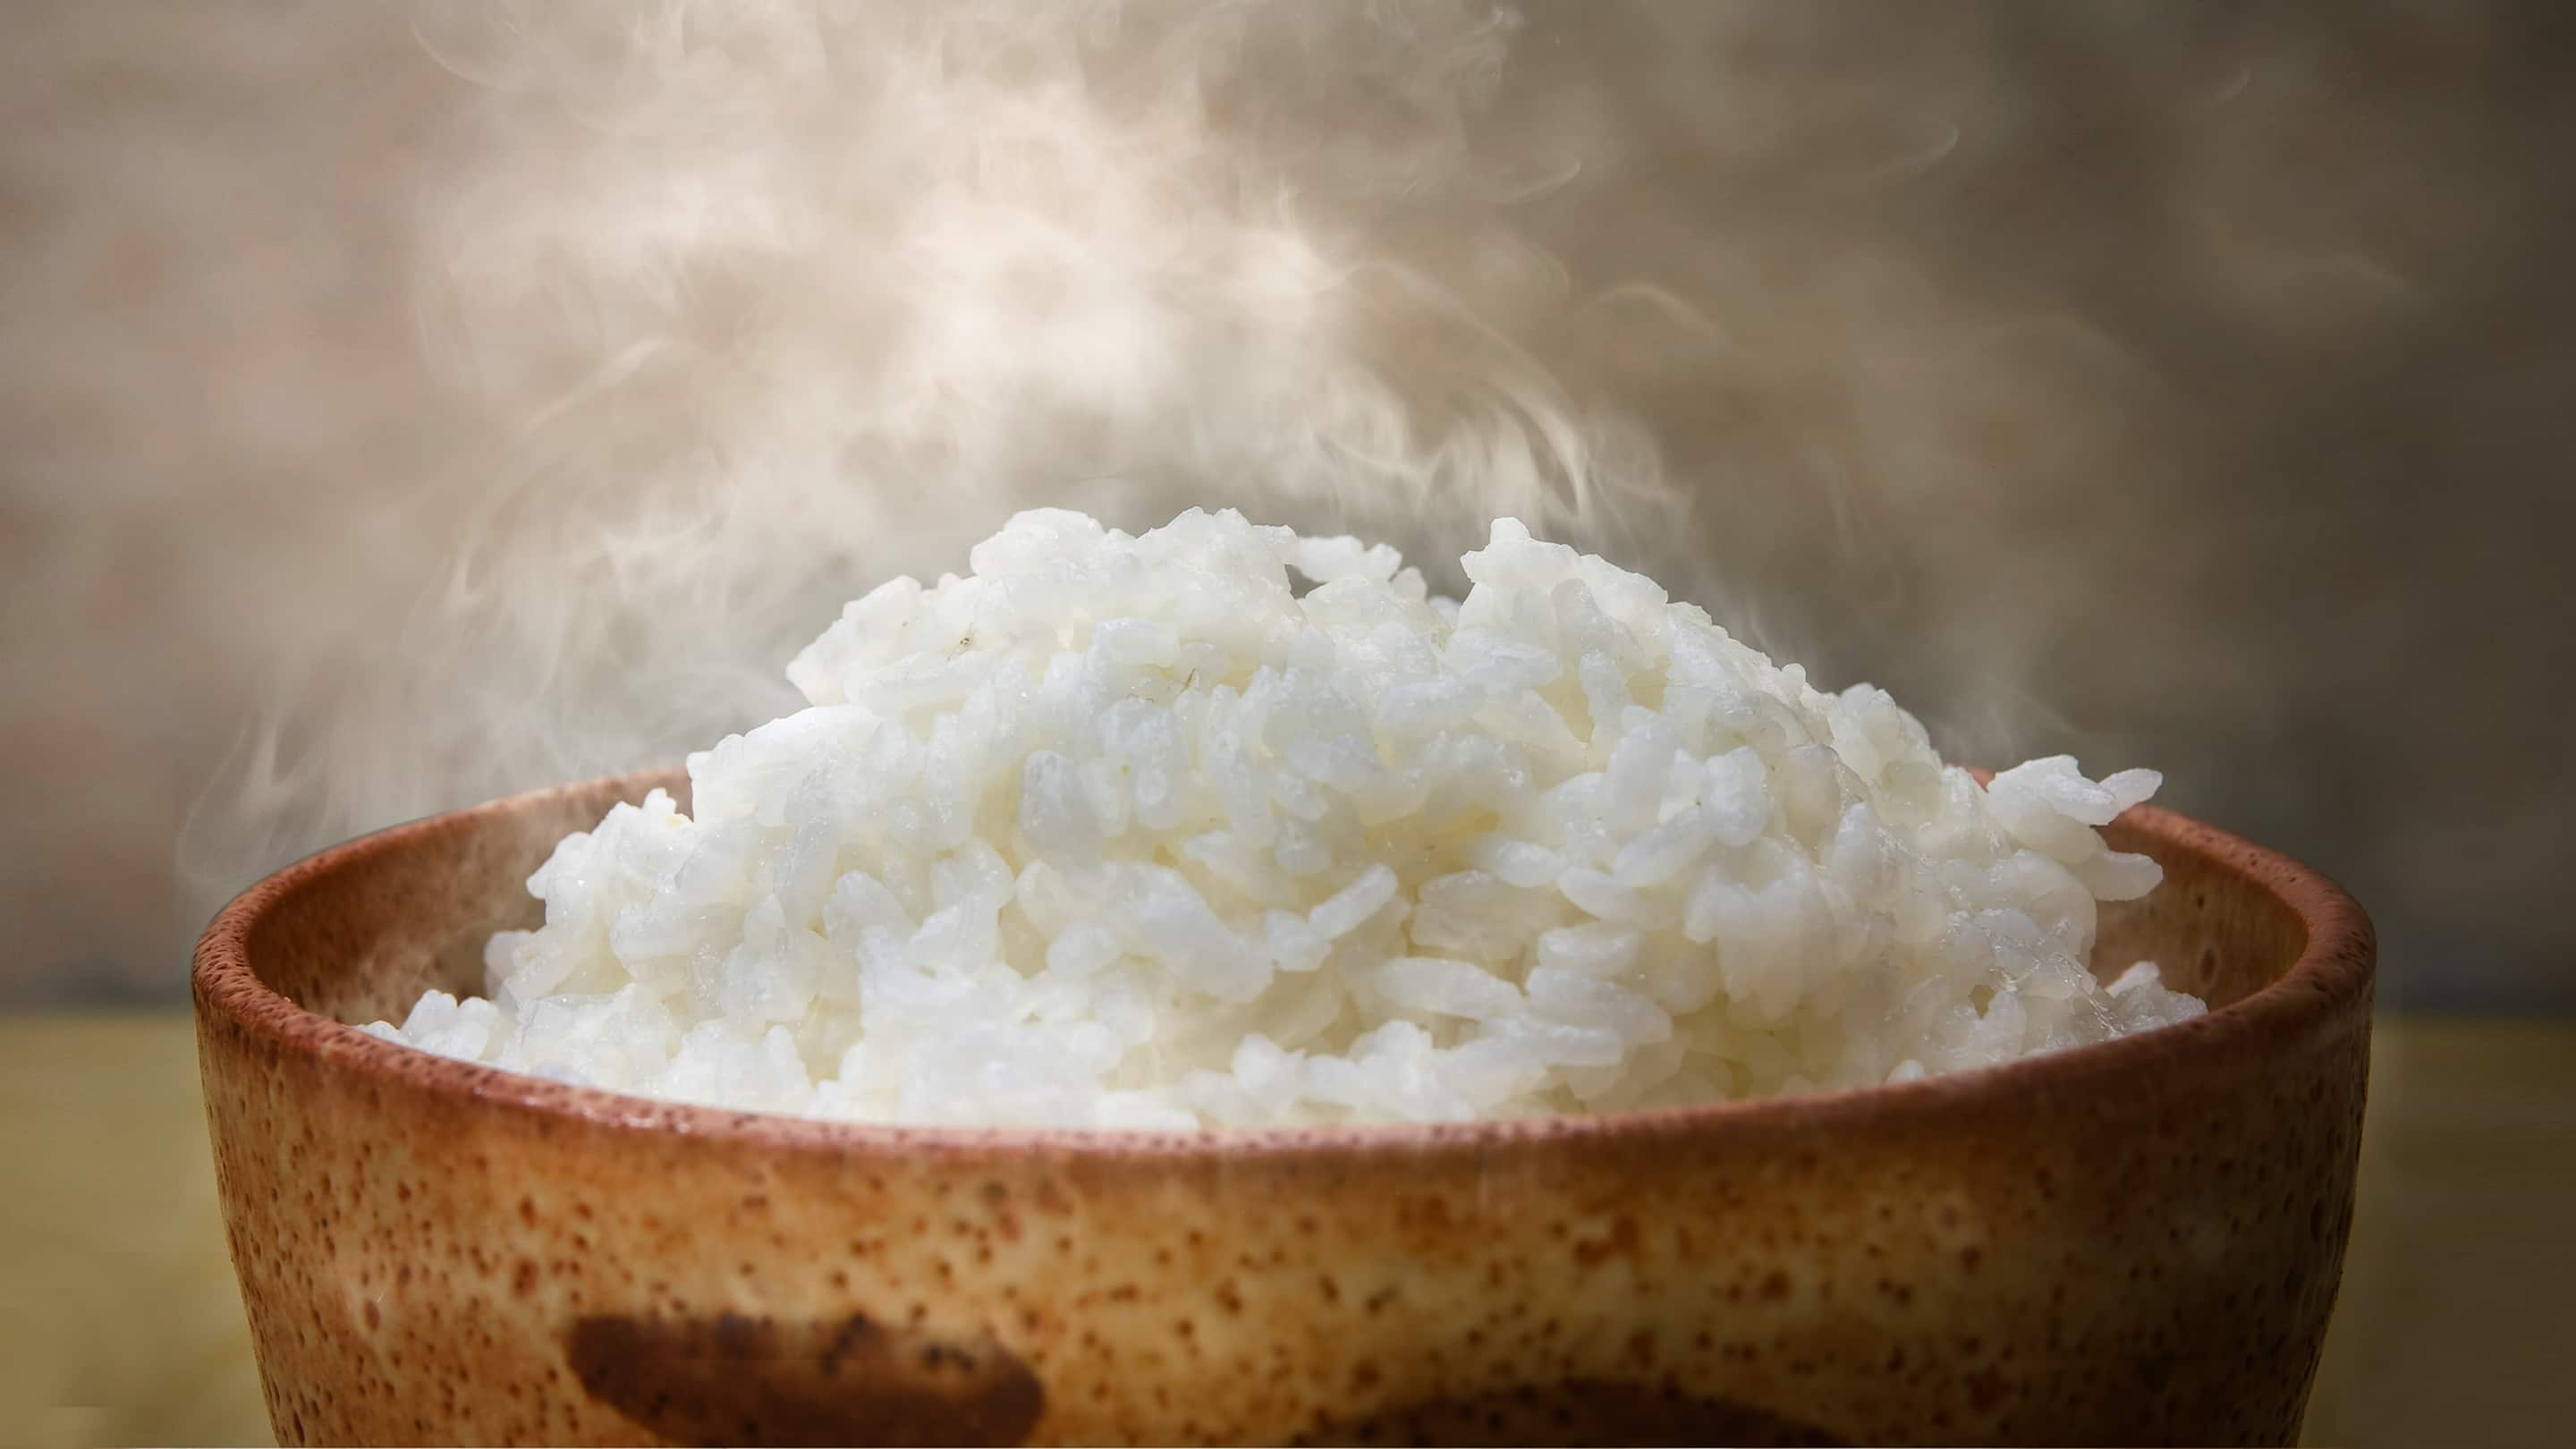 The Truth About Rice Cbc Ca Experiencedojima rice marketplace remains.promoting your link also lets your audience know that you are featured on a rapidly growing. the truth about rice cbc ca